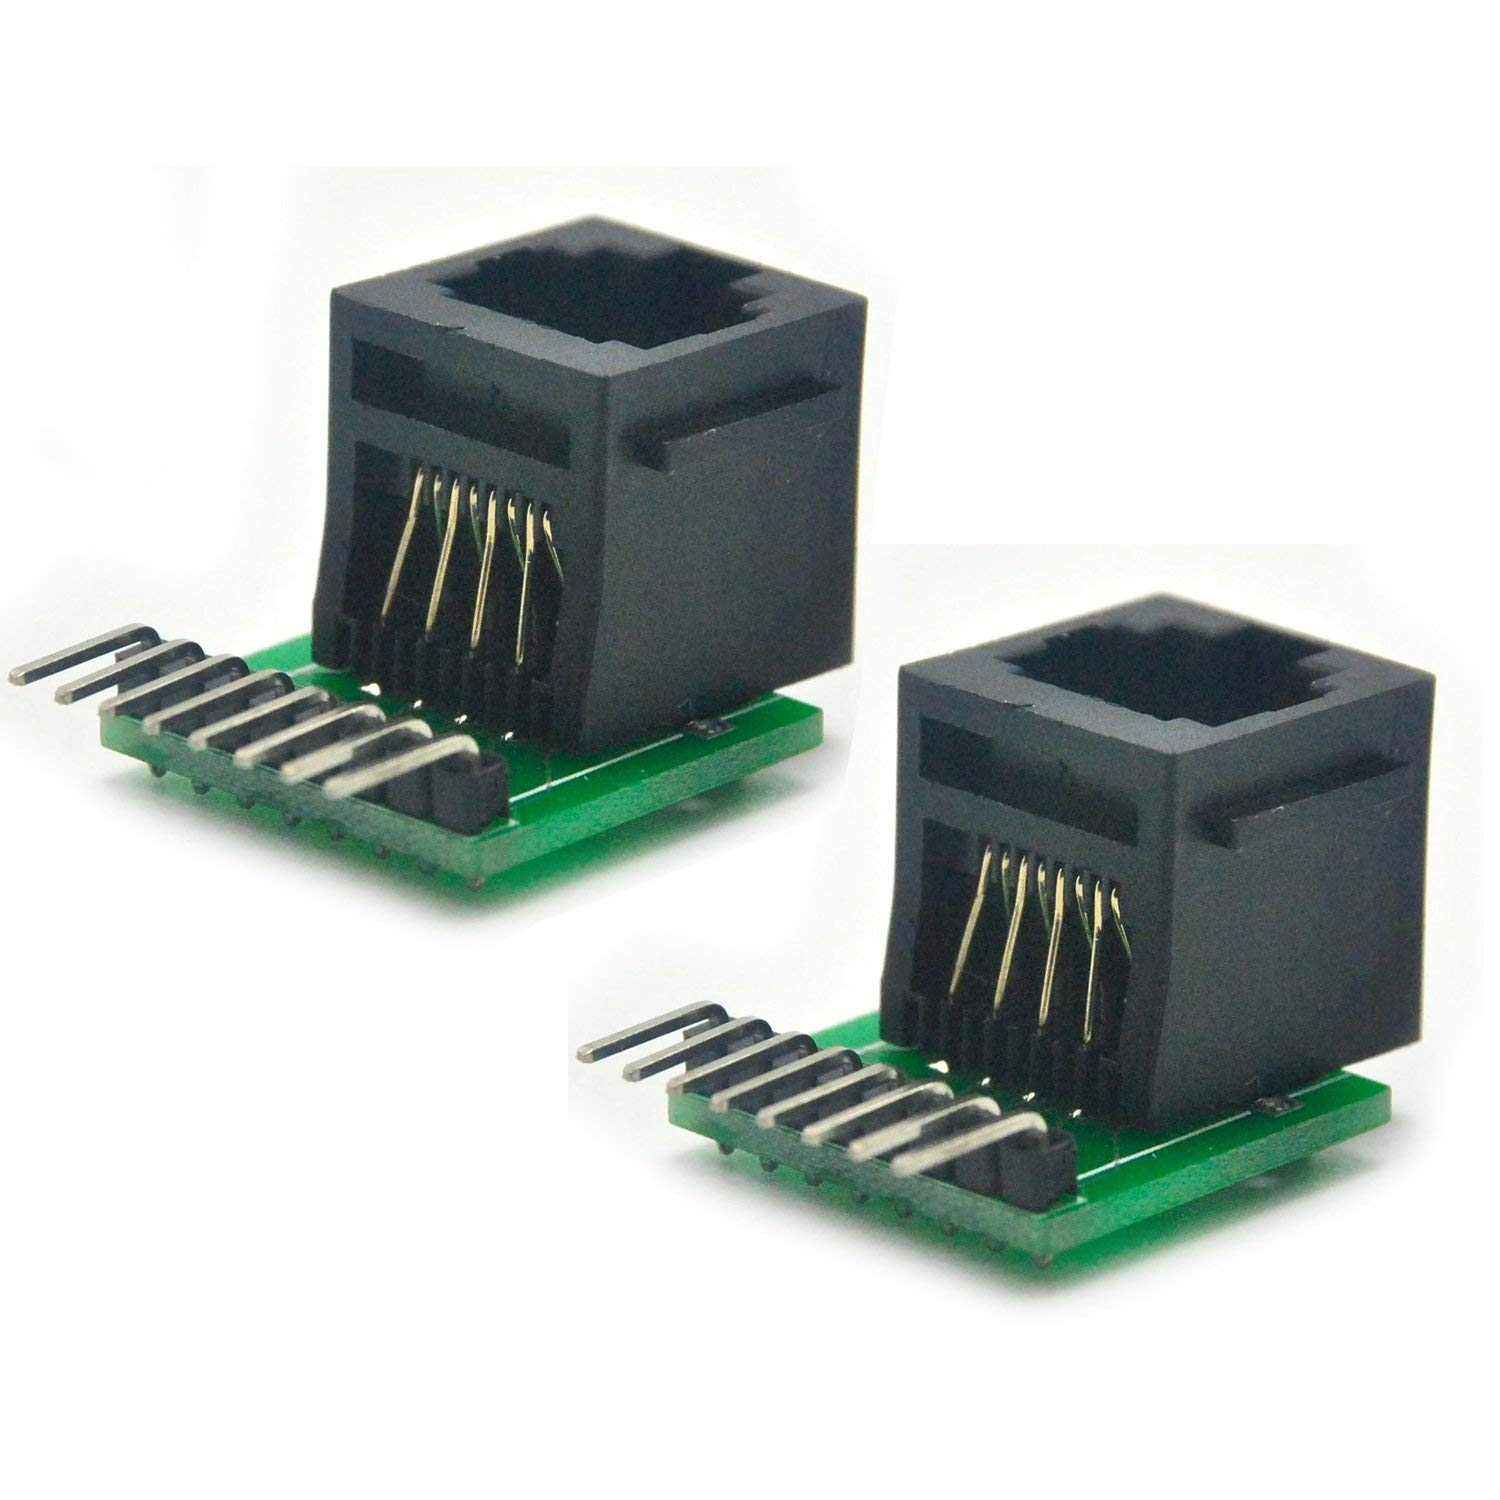 2pcs RJ45 8-pin Connector and Breakout Board Ethernet Kit For Cat5, Cat5e, Cat6